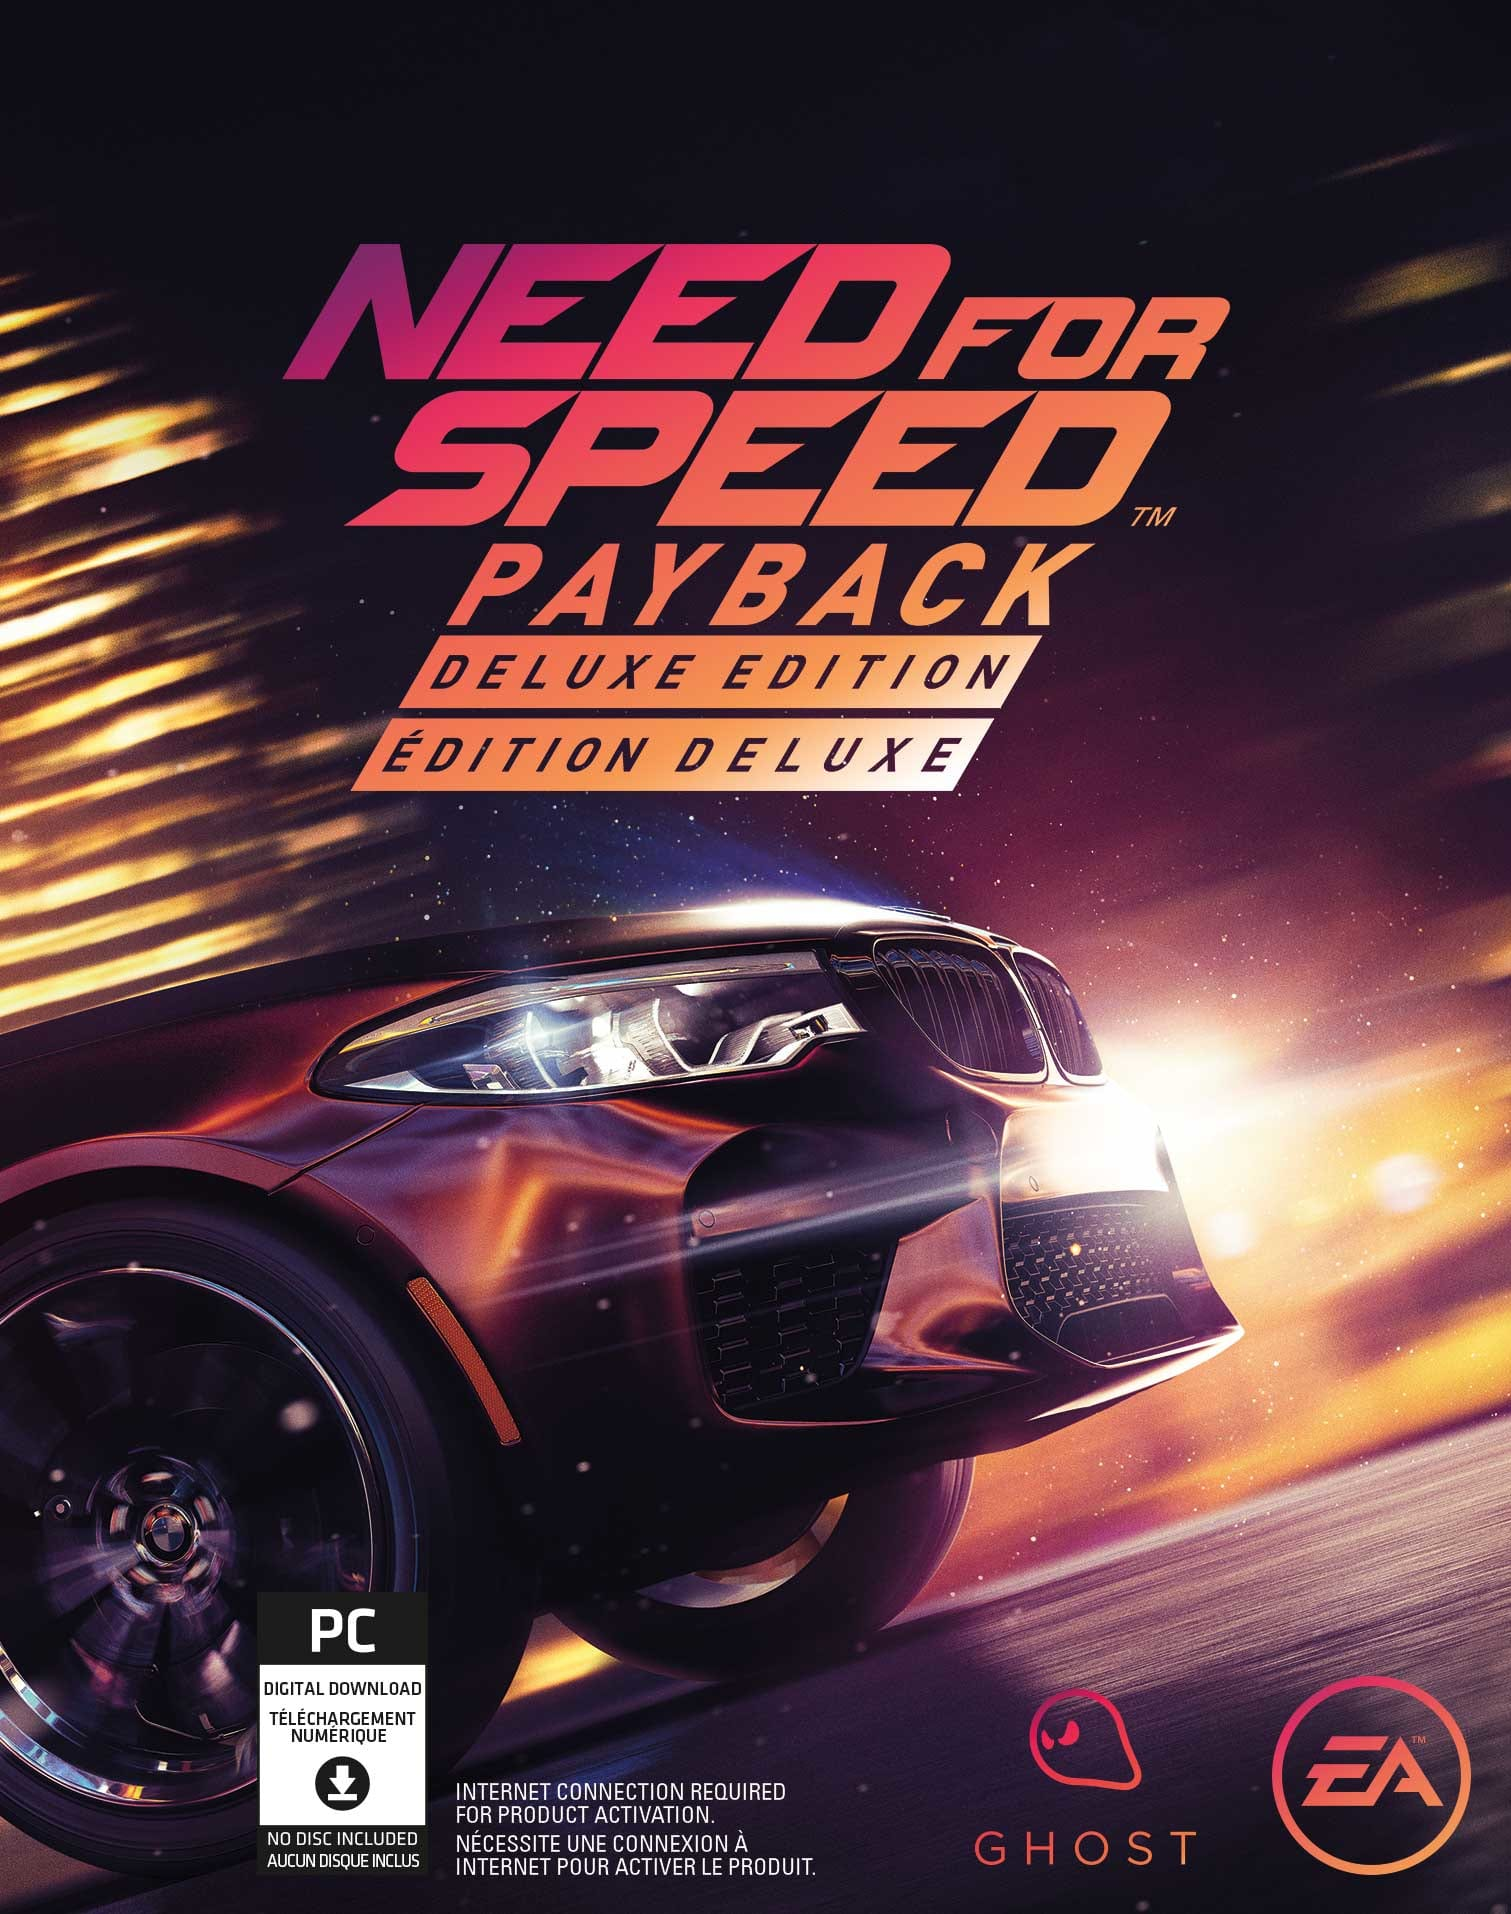 Need for speedtm payback logo